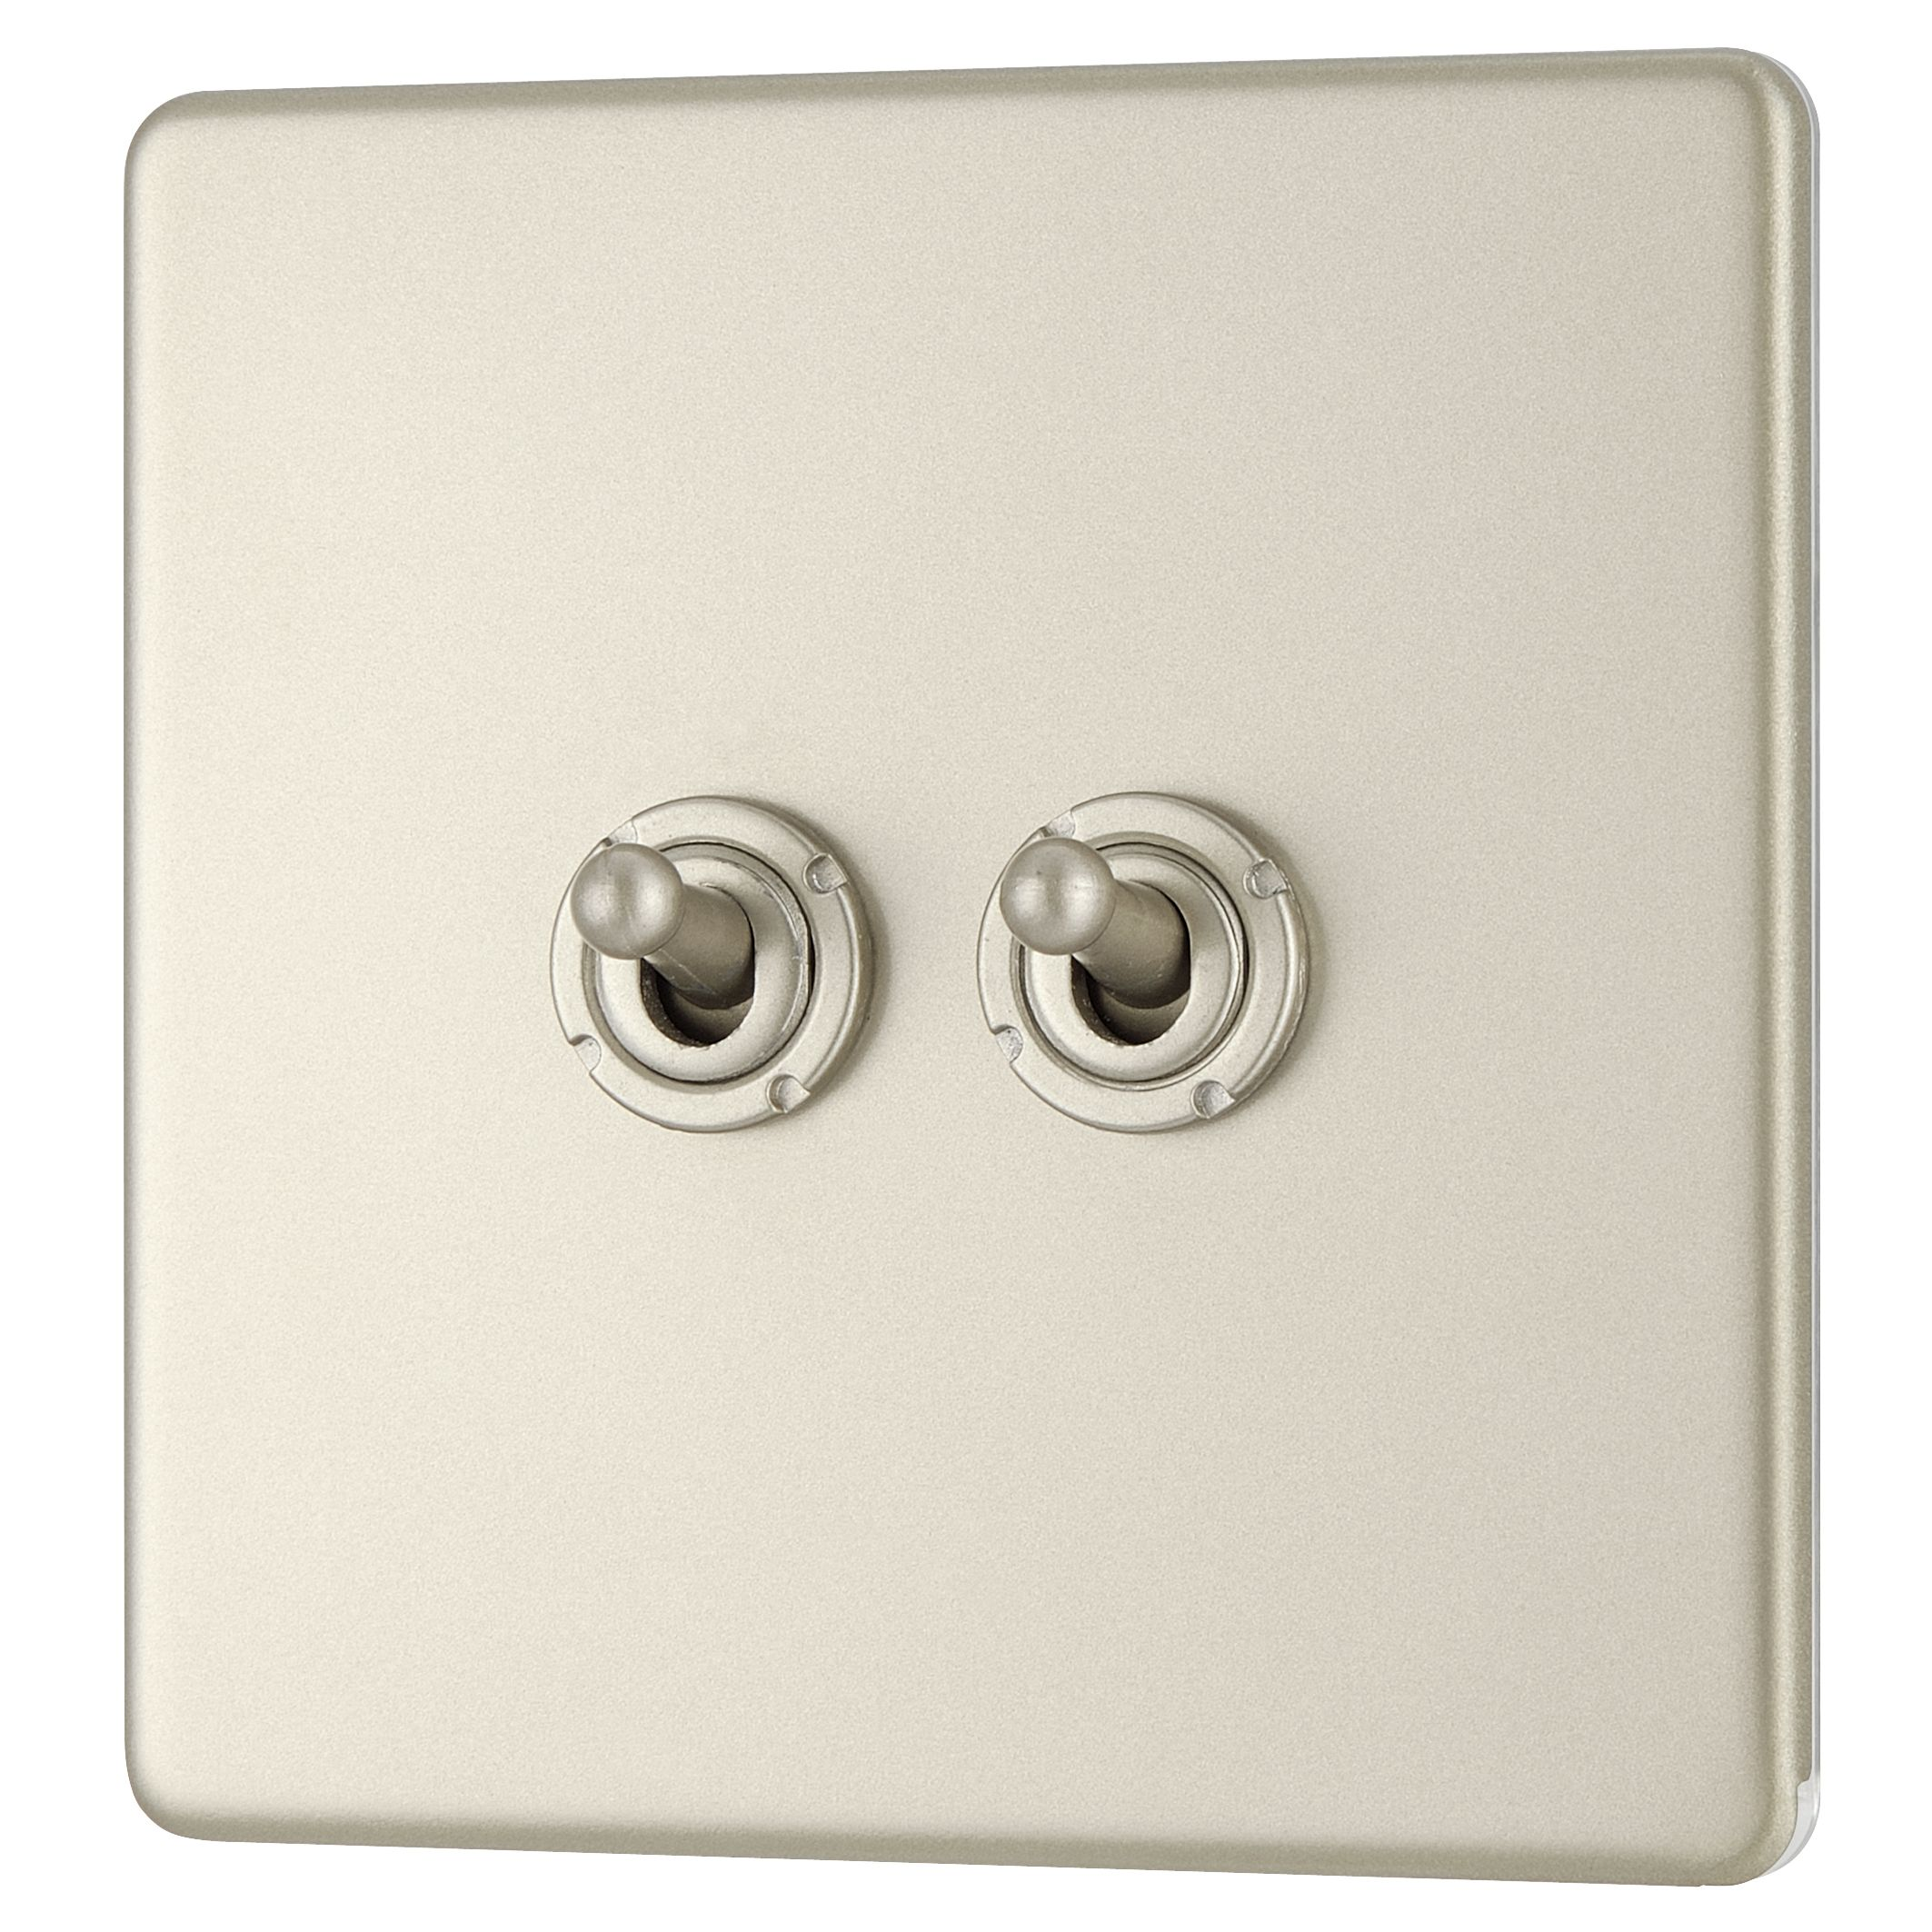 Colours 10a 2-way Double Pearl Nickel Toggle Switch